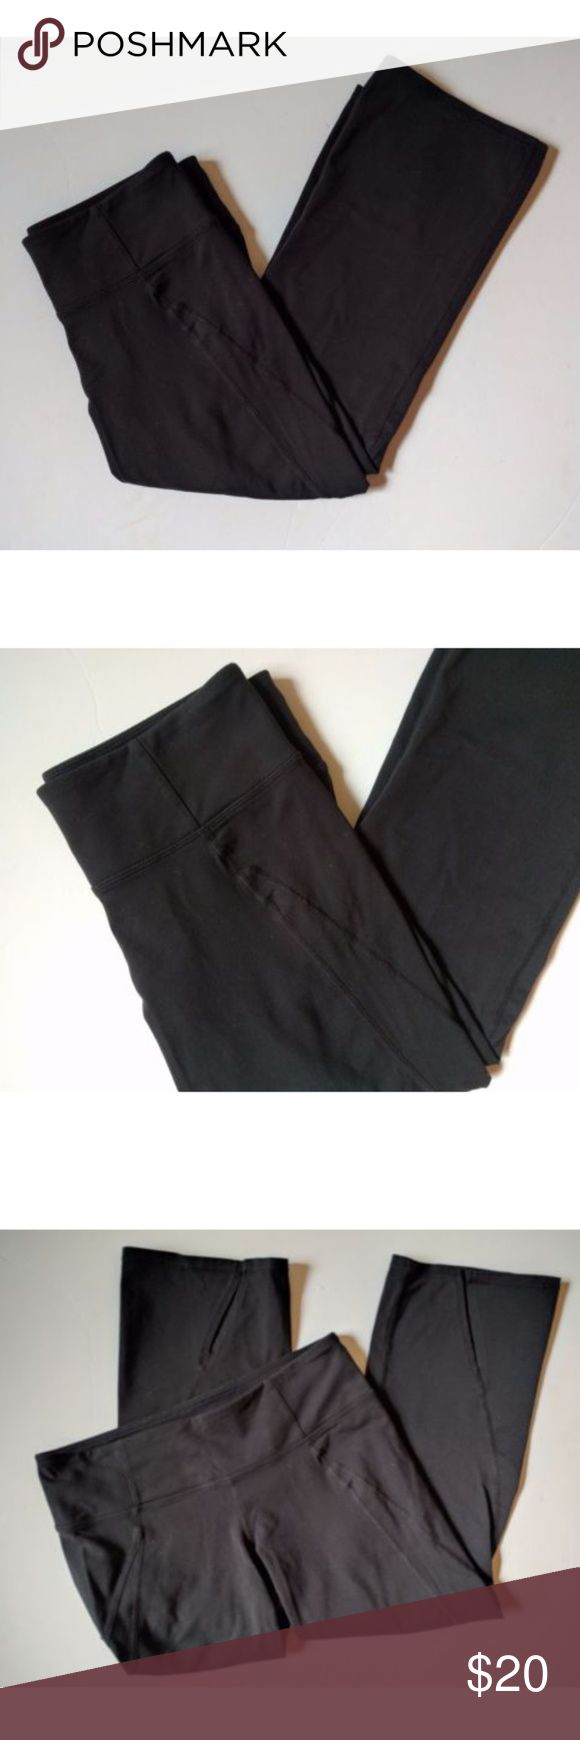 "Athleta S Black Power Up Capri Yoga Leggings Athleta S Black Power Up Capri Yoga Leggings Back Slits #268553  The yoga capri with a flattering straight leg and a notch-back hem -INSPIRED FOR: yoga, studio workouts, gym/training  Size Small Label waist: 14.5"" hip: 16"" inseam: 22"" outseam: 28.5"" leg opening: 7.5"" front rise: 7"" back rise: 8.5""  Condition: Item is in gently used condition. Free of any holes or stains in fabric and stored in a smoke free environment. Athleta Pants Capris"